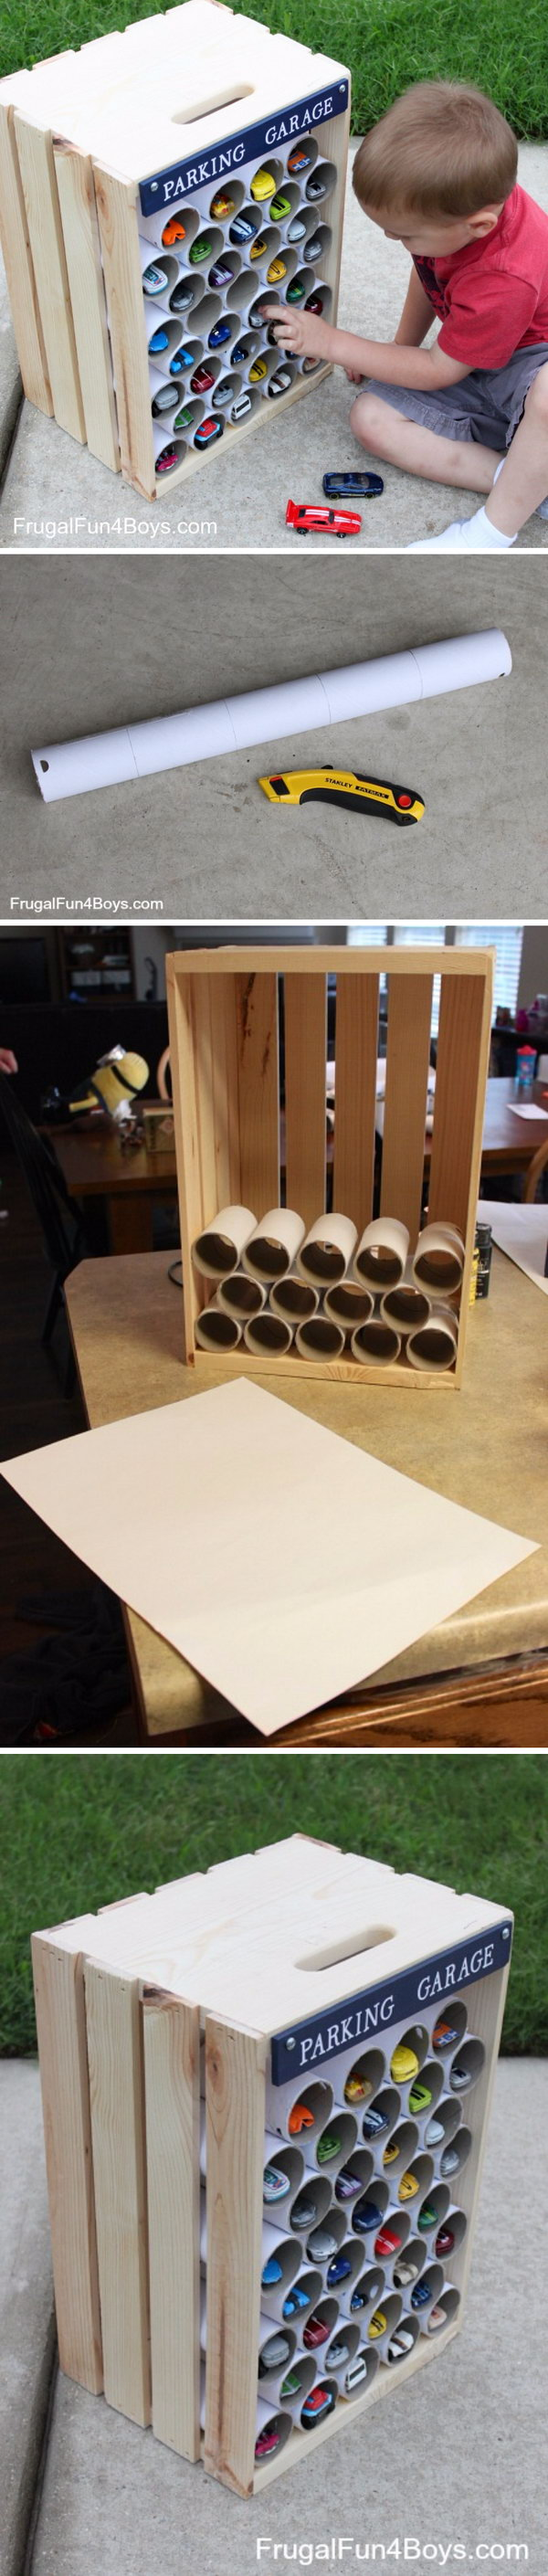 DIY Crate Hot Wheels Storage Made From Wood Crate and PVC Pipes.